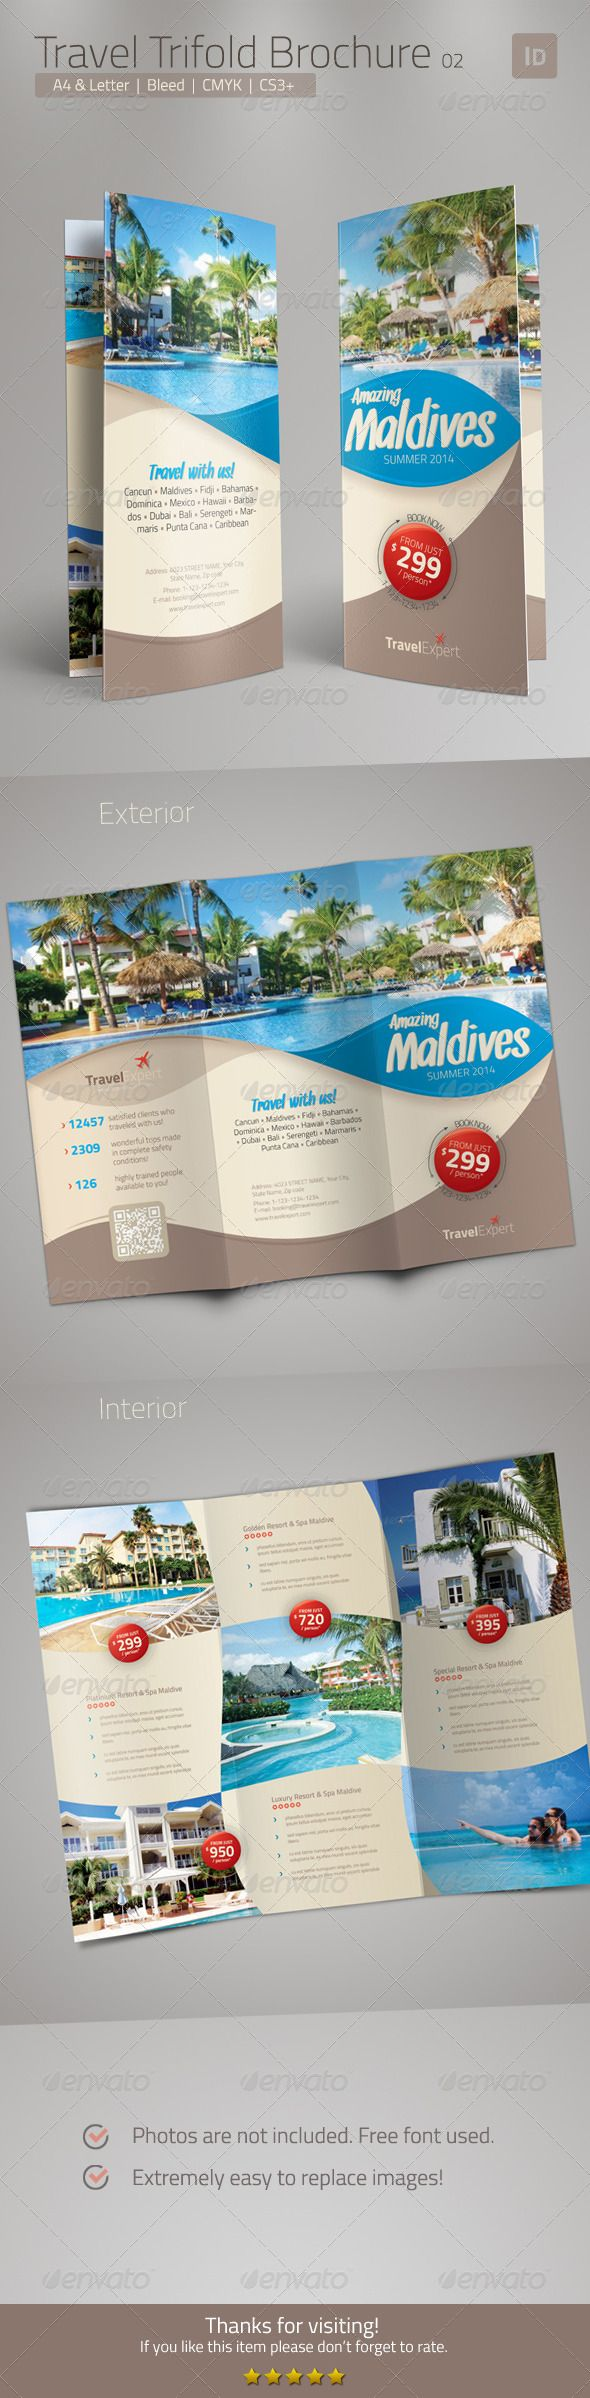 Travel Brochure - Trifold  InDesign Template • Download ➝ https://graphicriver.net/item/travel-brochure-trifold-/6800019?ref=pxcr